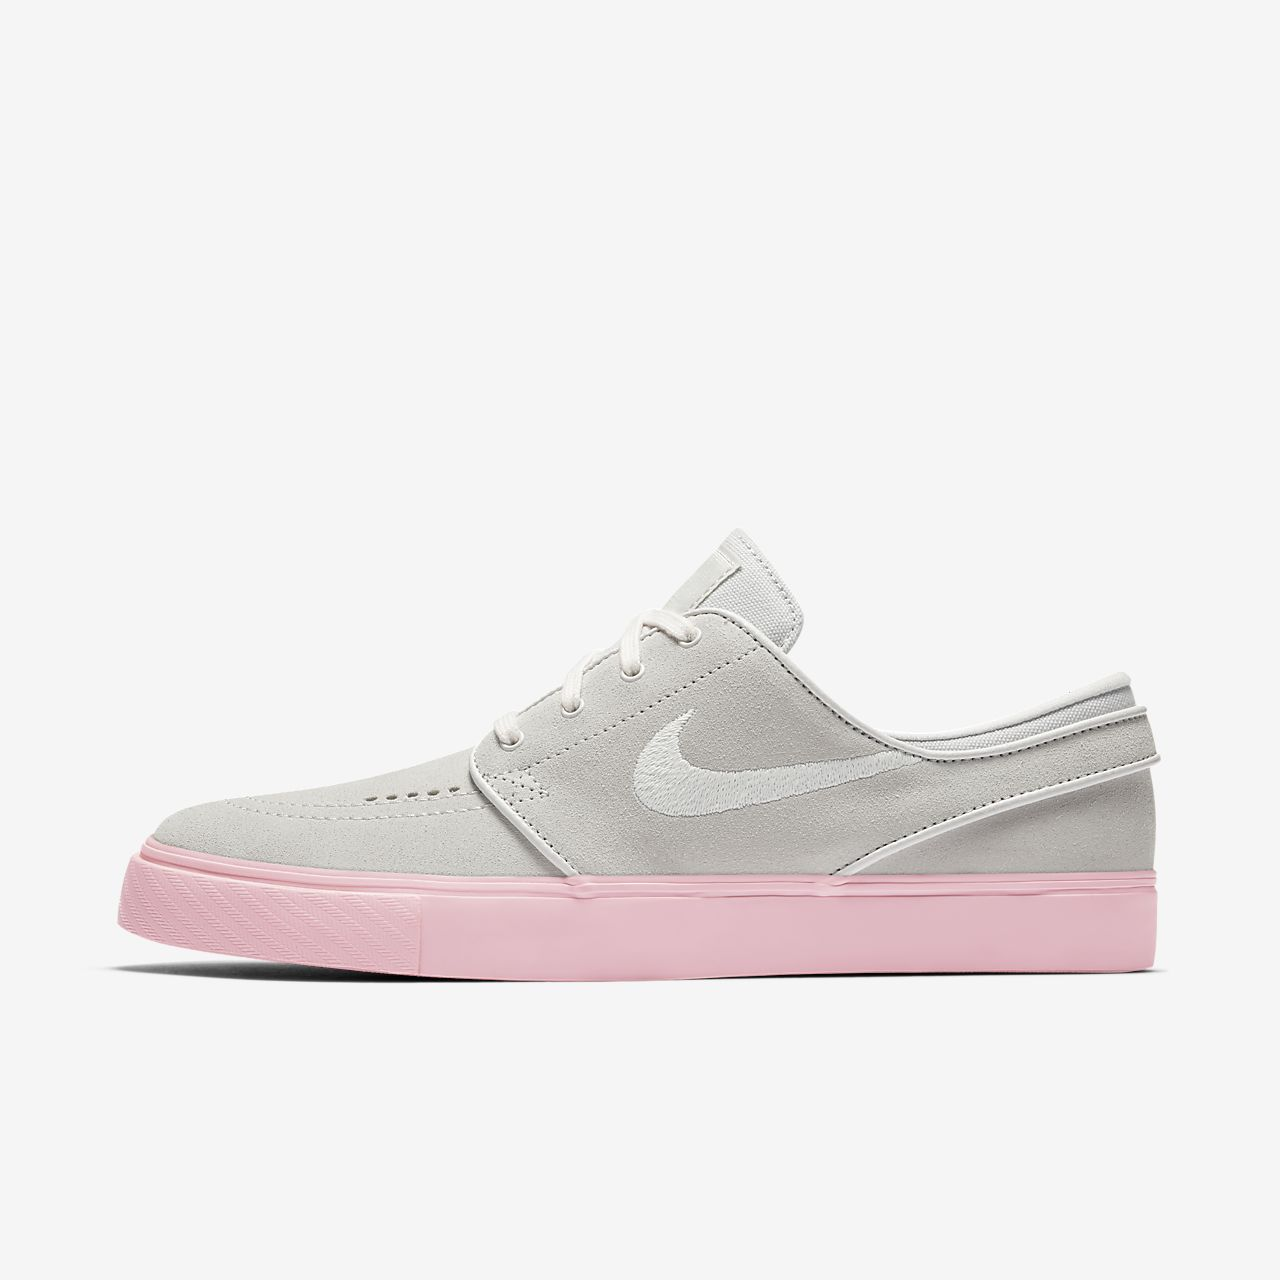 Nike SB Stefan Janoski Premium SE Skate Shoes Summit Wit